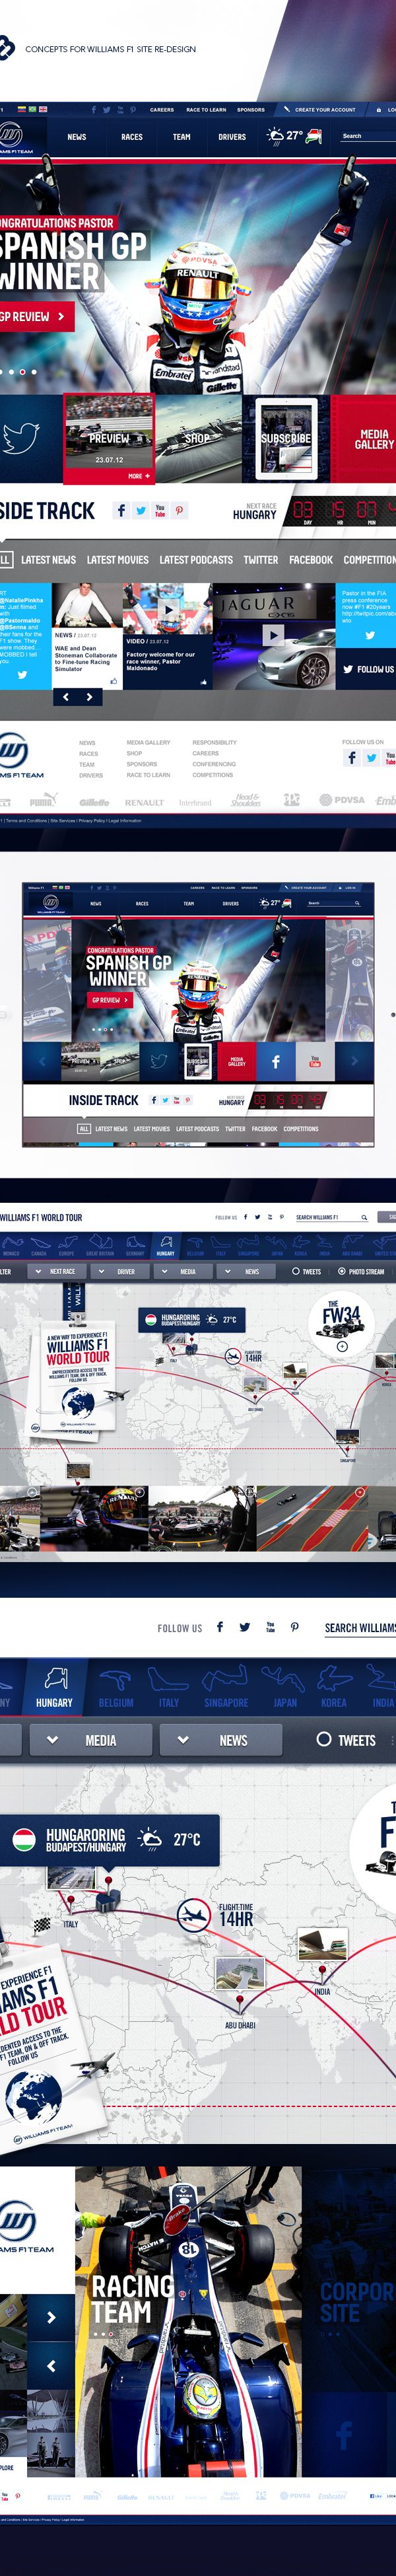 Williams F1 Concept Site Design by Andrew Edwards, via Behance